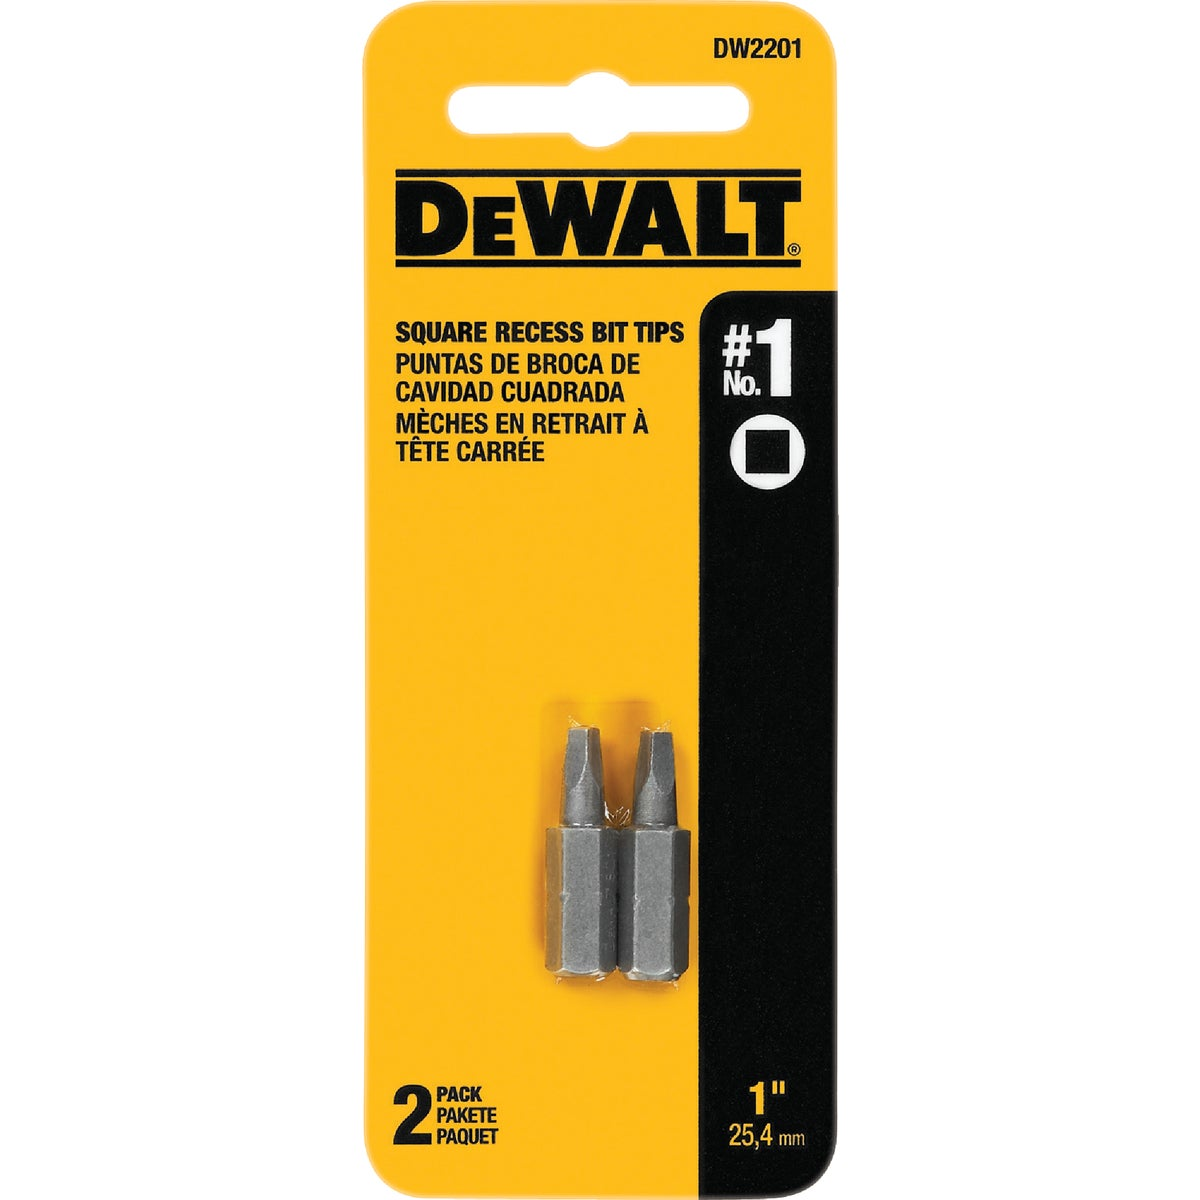 "#1 1"" SQUARE RECESS BIT - DW2201 by DeWalt"